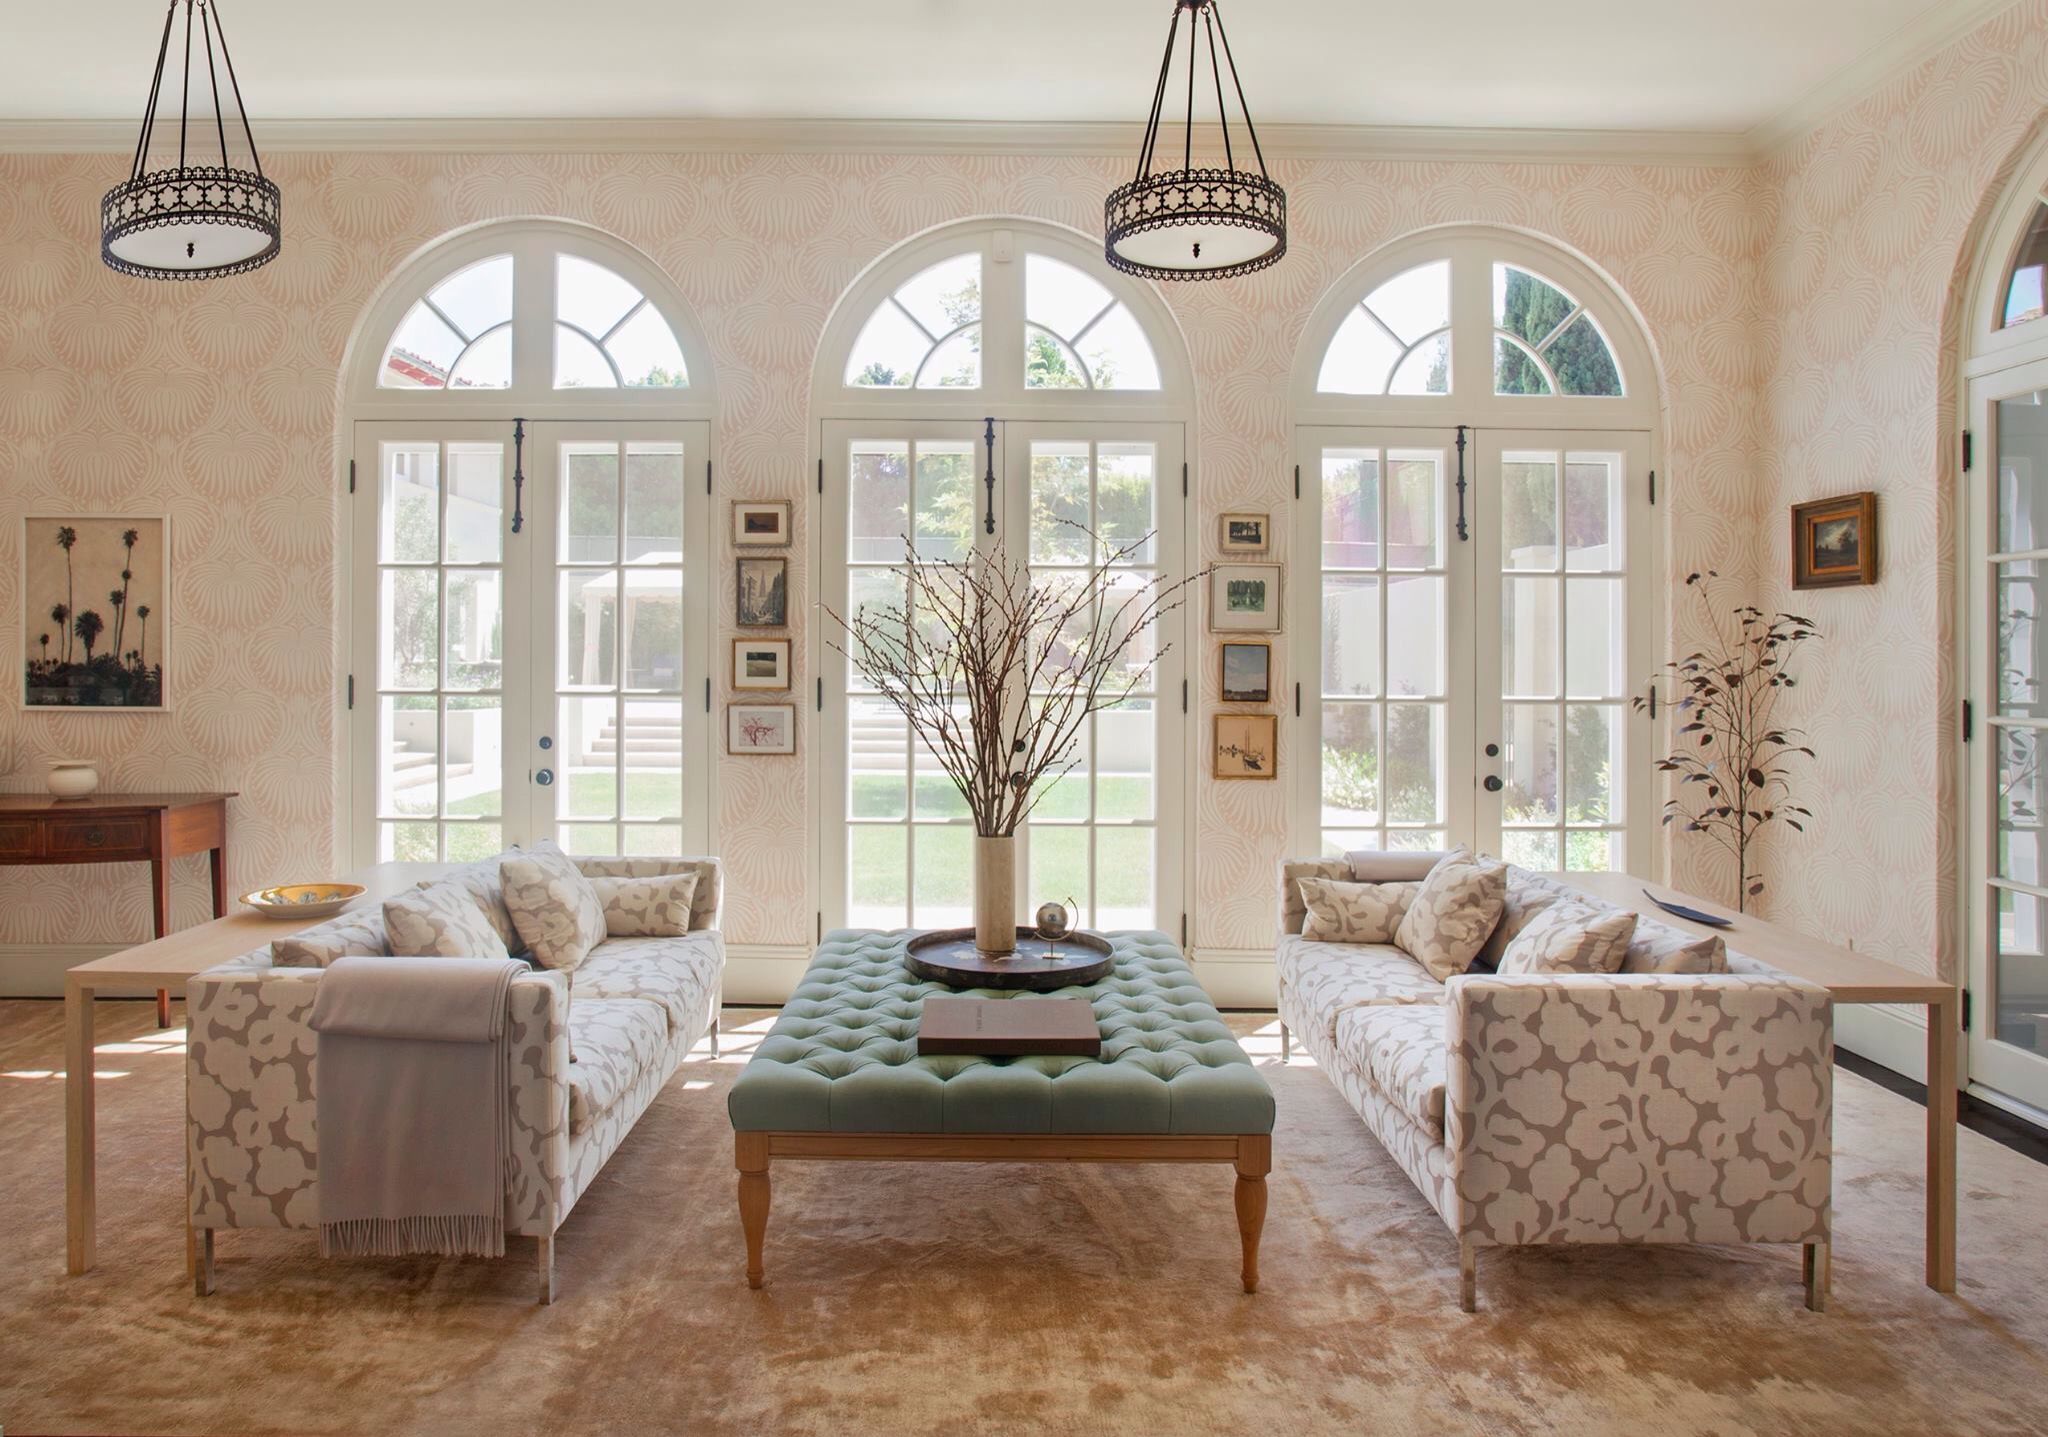 Living room design by Louise Voyazis Photo